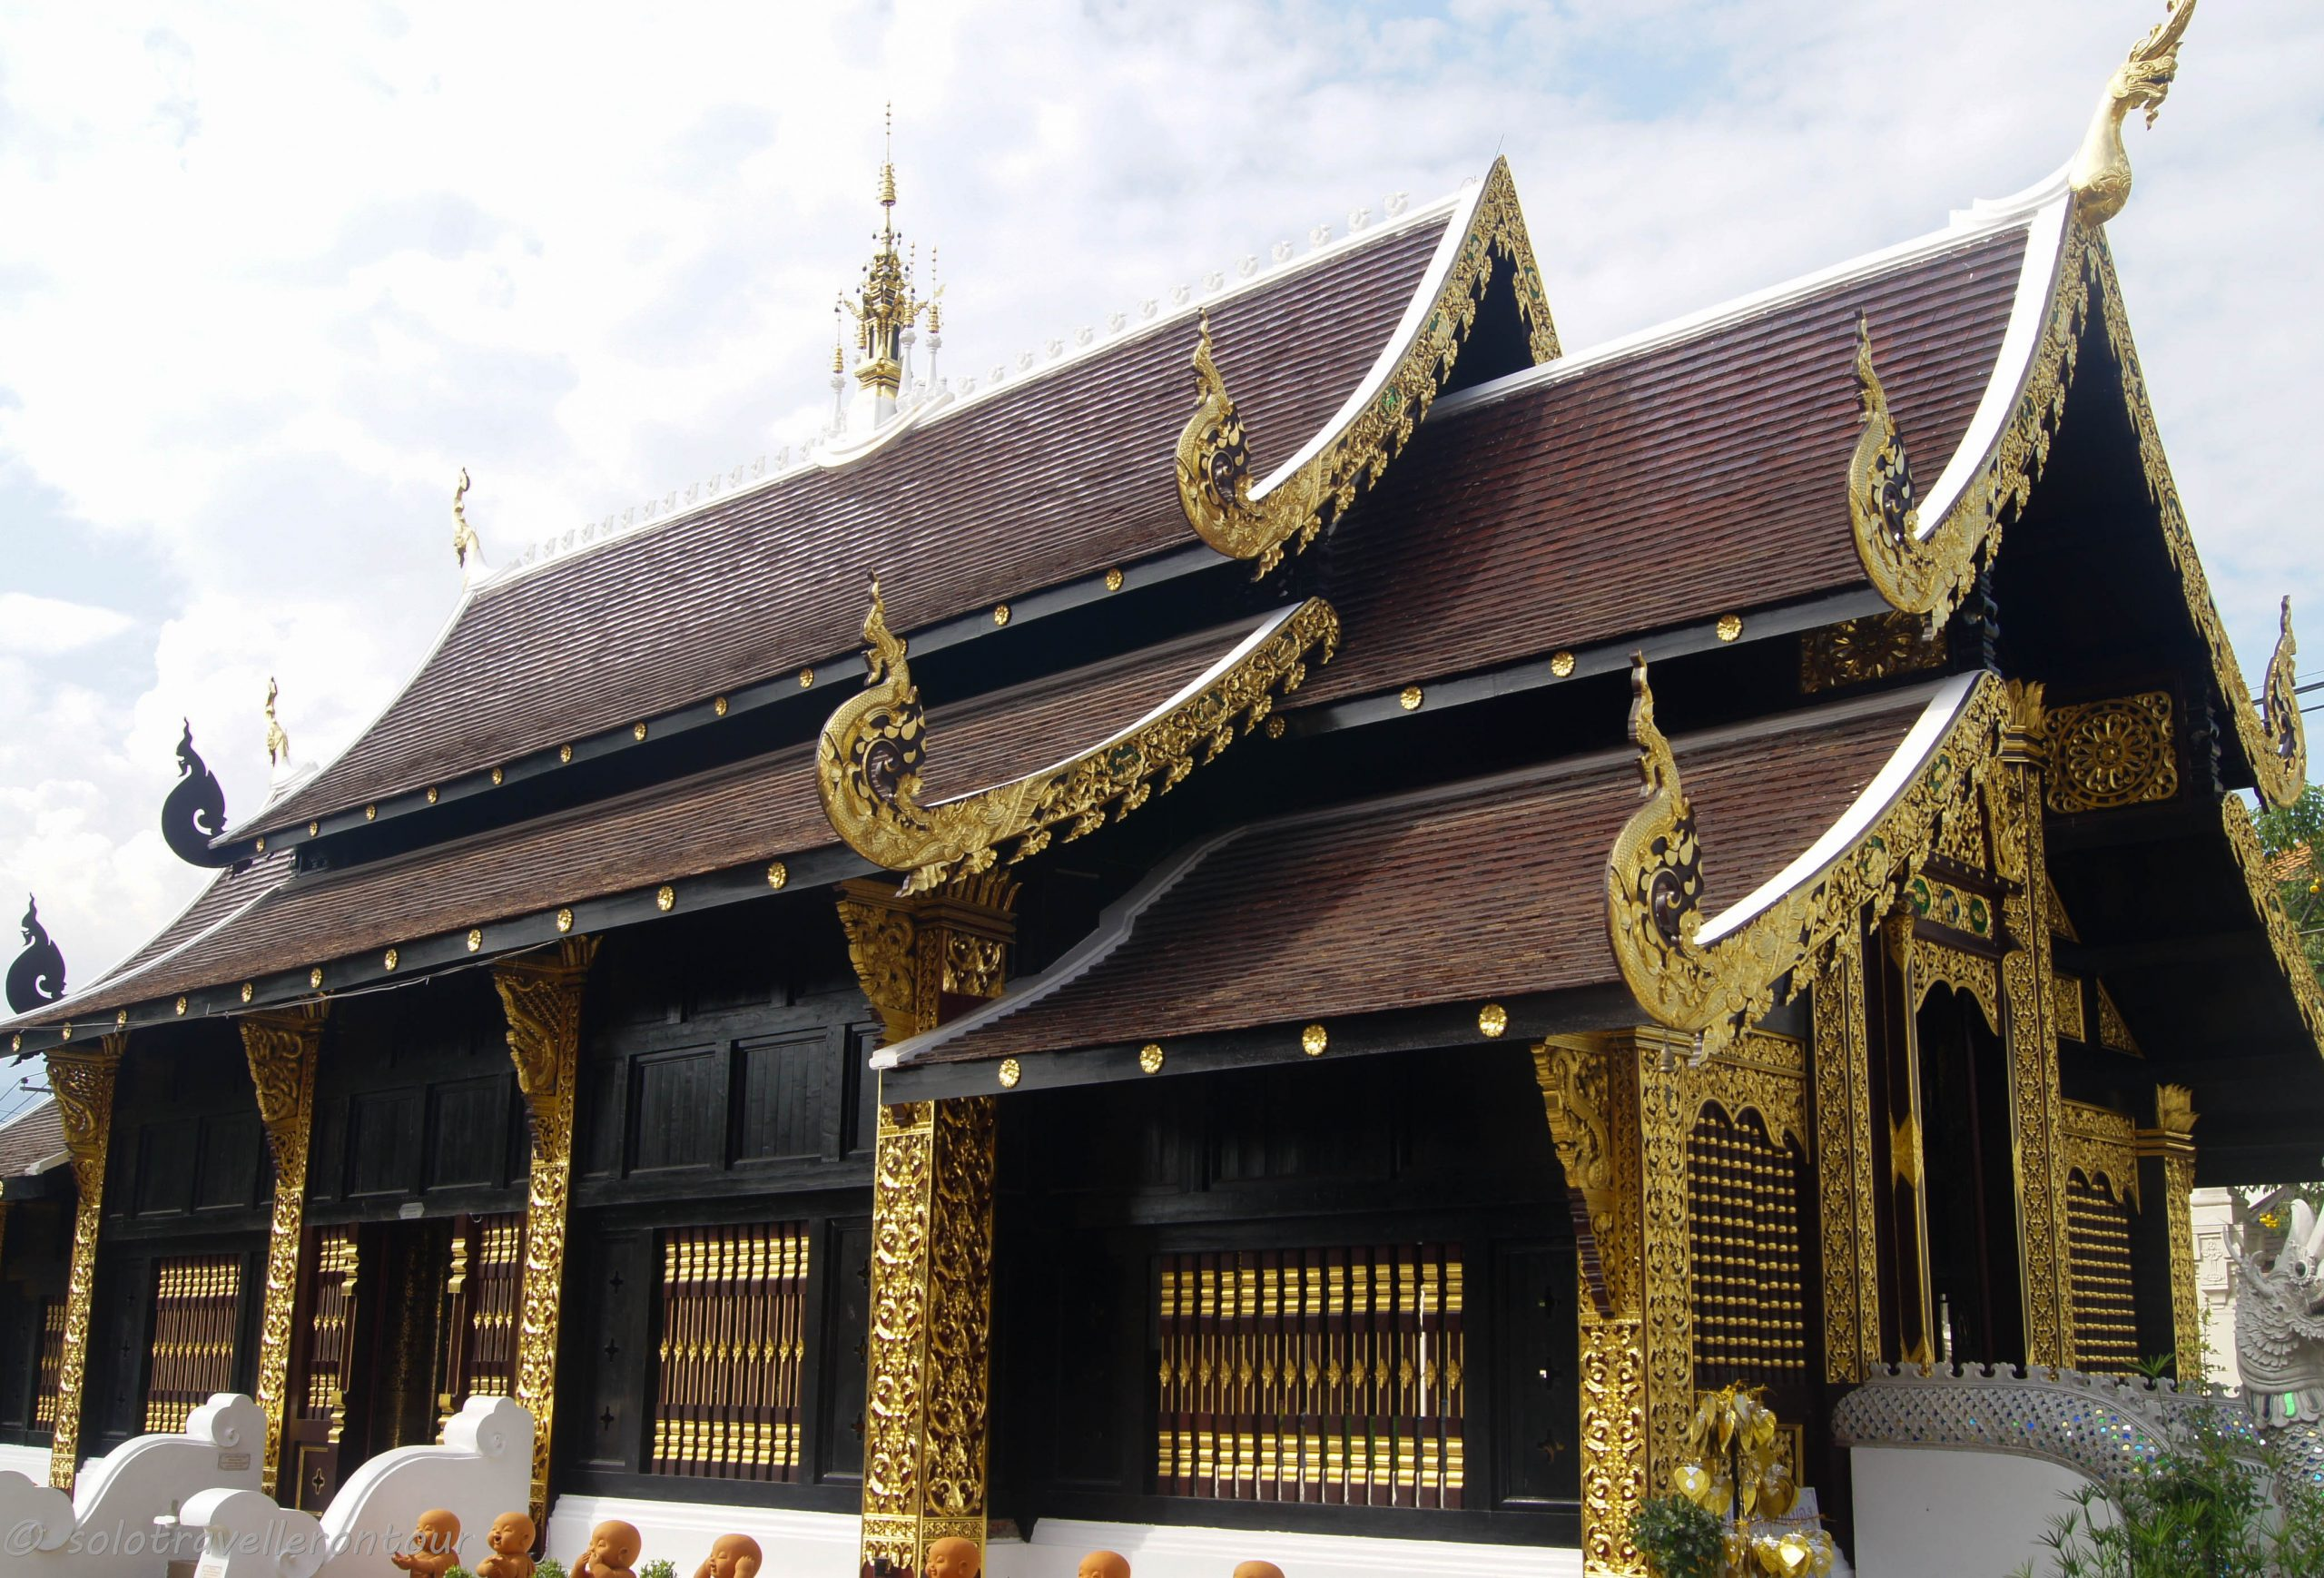 4. A Happy return to Chaing Mai